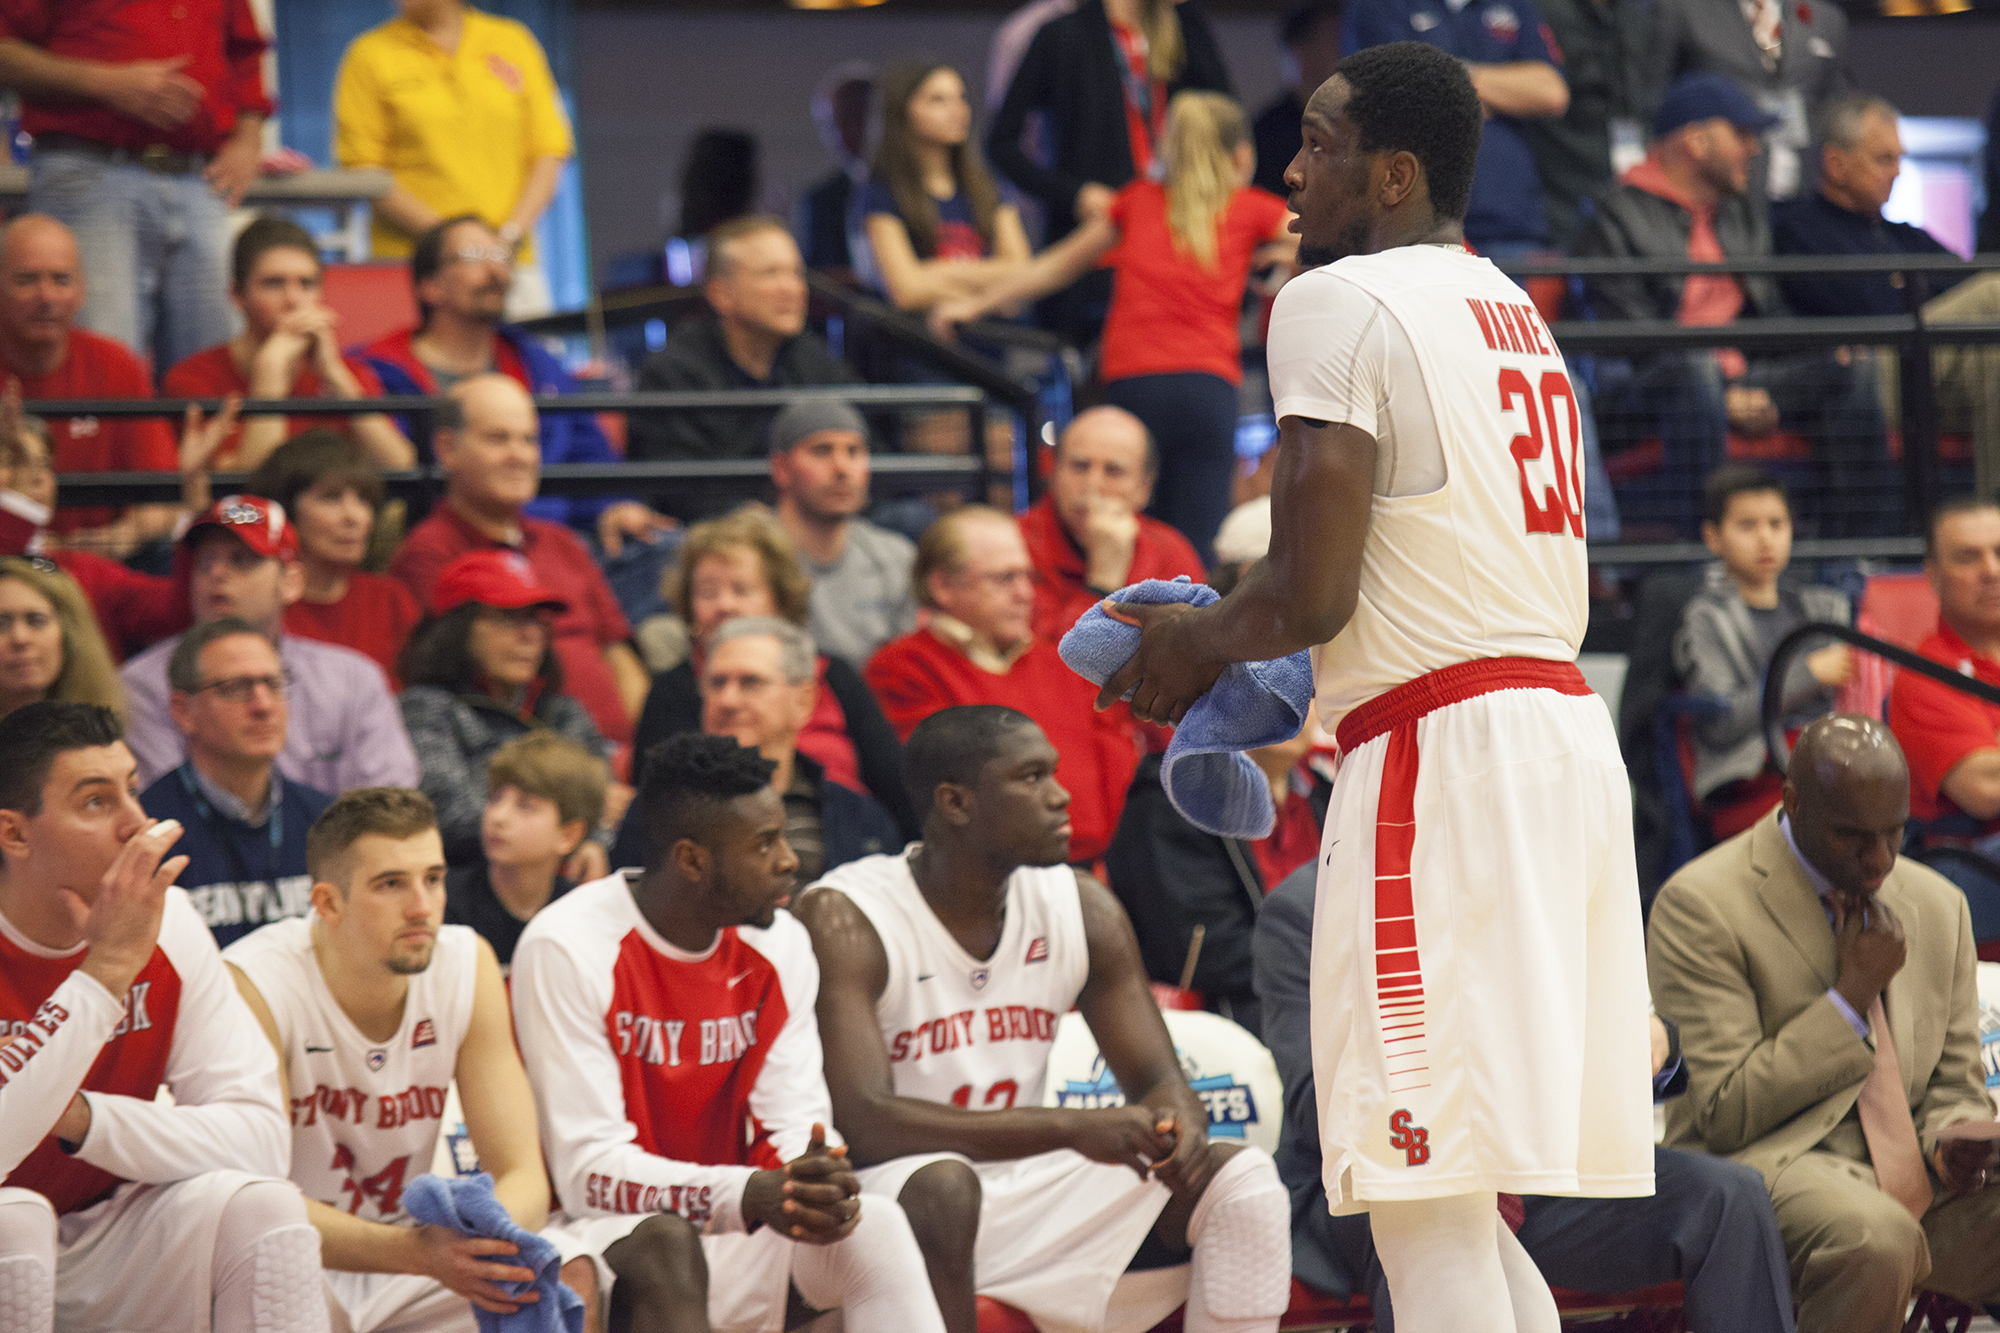 Stony Brook senior forward Jameel Warney (No. 20, above), glances up at the scoreboard after he scores another layup, widening the Seawolves' lead to five points. CHRISTOPHER CAMERON/THE STATESMAN